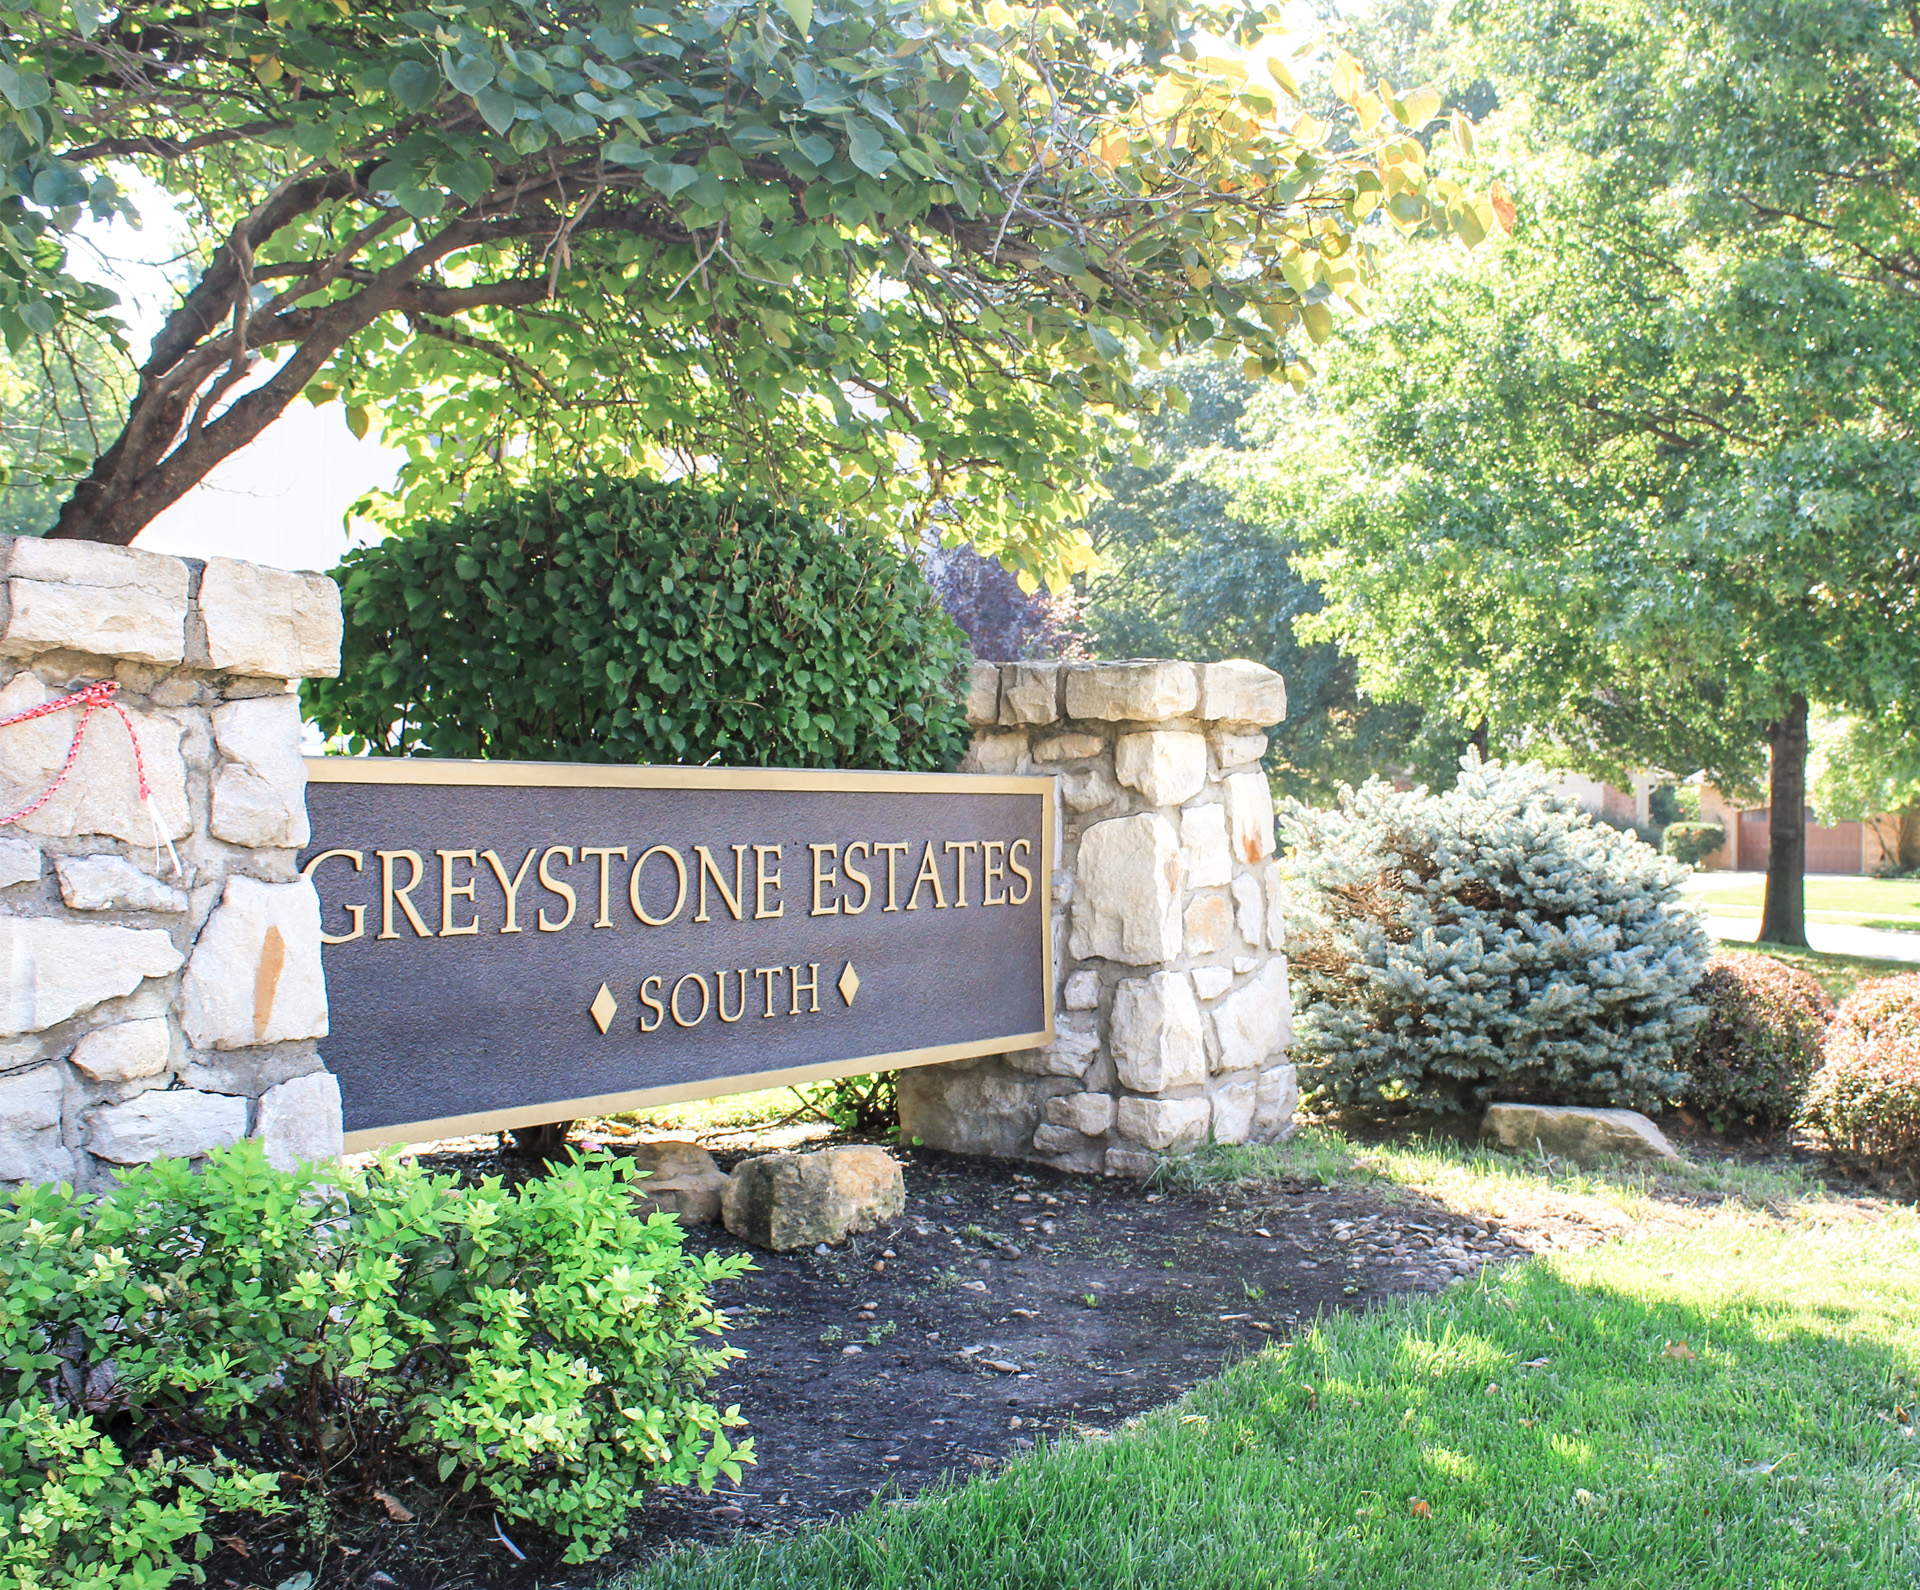 About Greystone Estates South